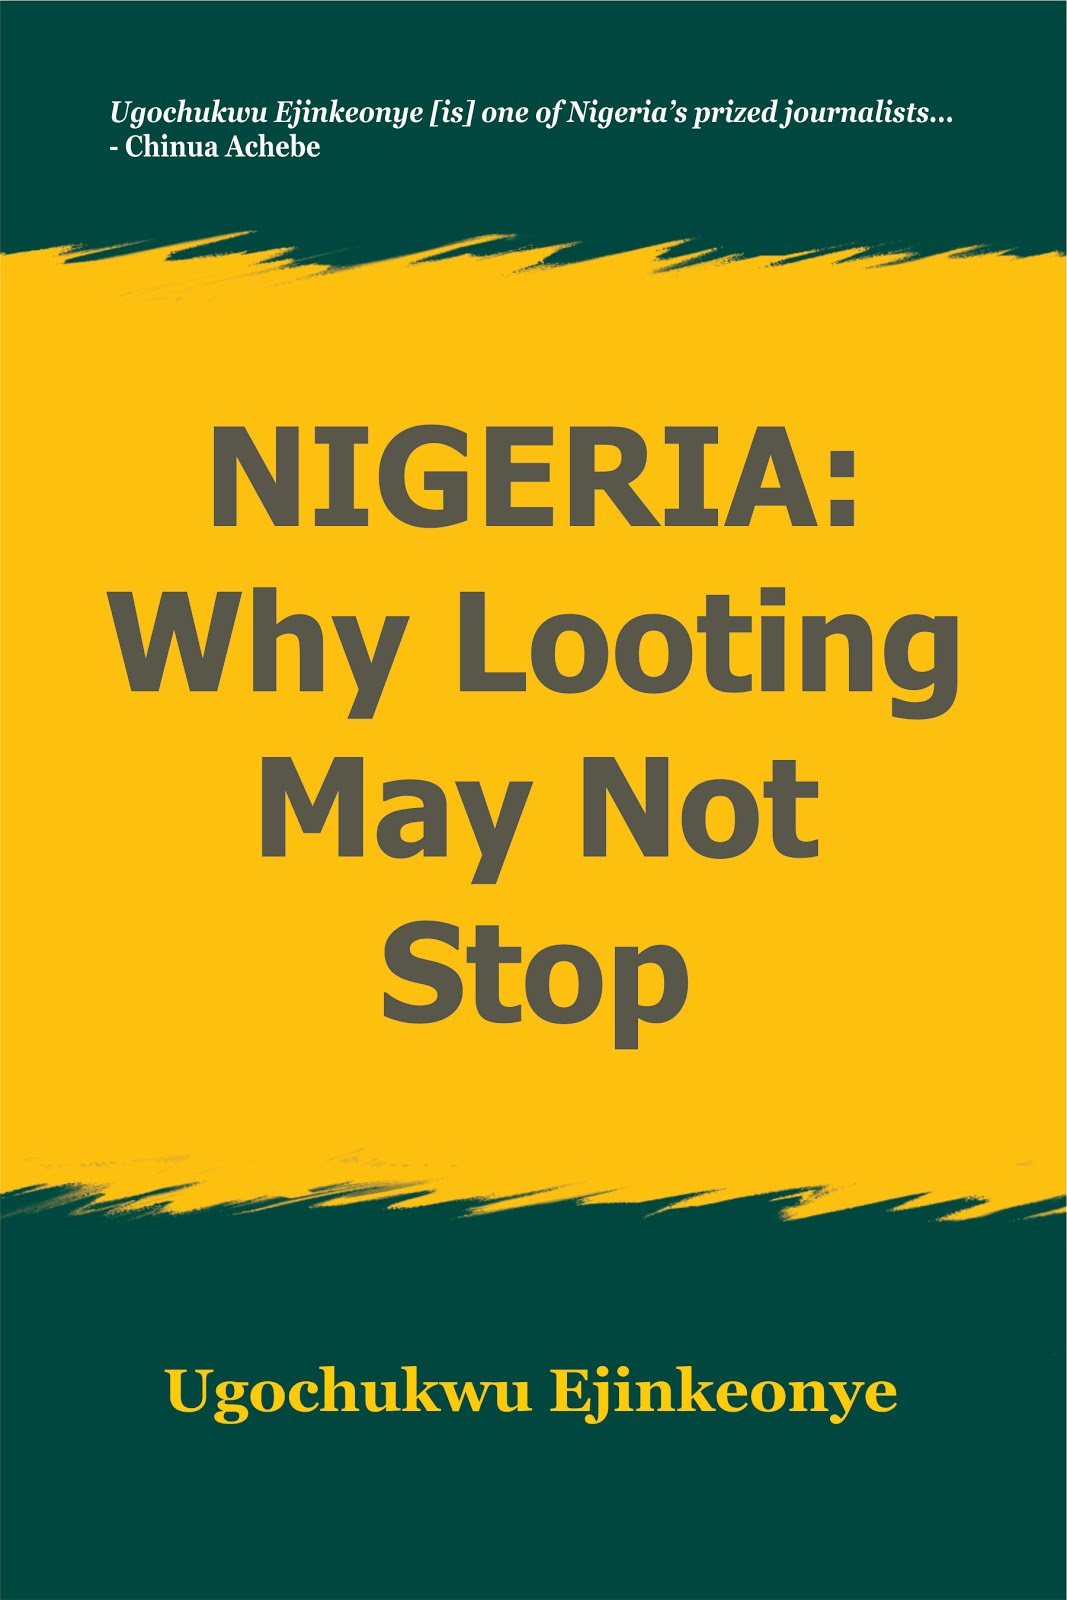 A New Book Every Nigerian Must Read: Now Available In Nigeria!